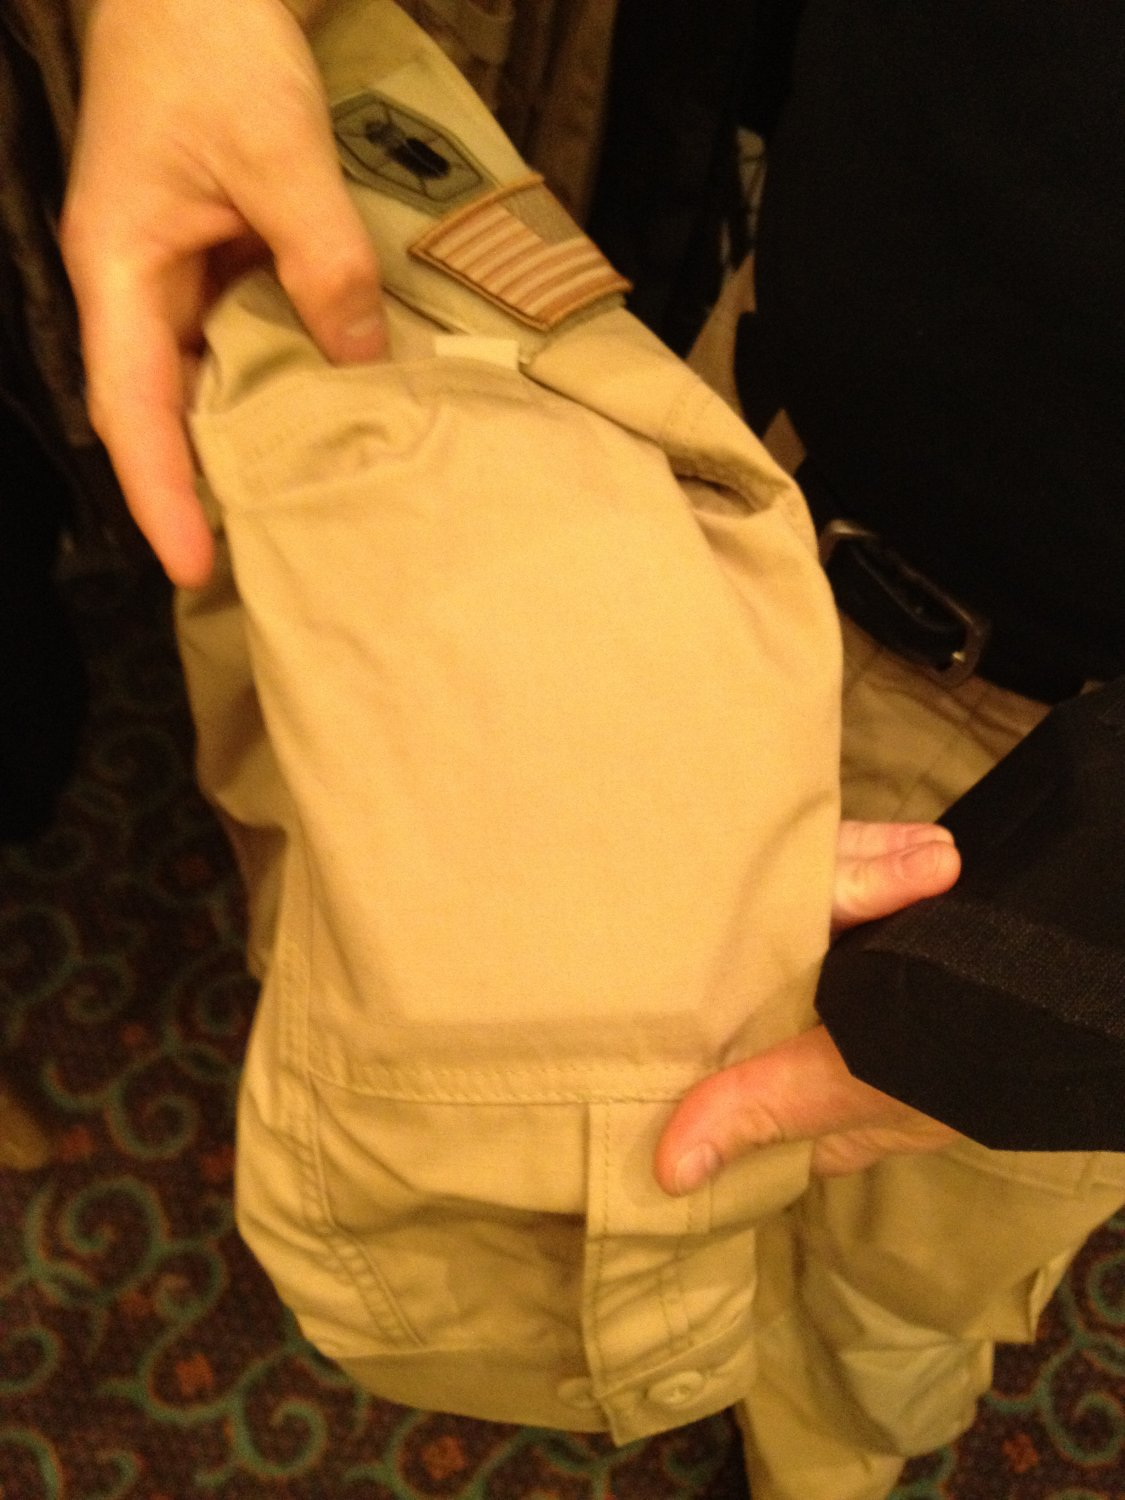 Kitanica Tactical Shirt Pocket for Poron XRD Smart Foam Padding System SHOT Show 2012 DefenseReview.com DR 1 Kitanica Mark V (MK5) Tactical Jacket with Textured Poron XRD Padding System for Civilian Tactical Shooters: The Latest Kitanica Advanced Tactical Apparel/Clothing Product (Video!)